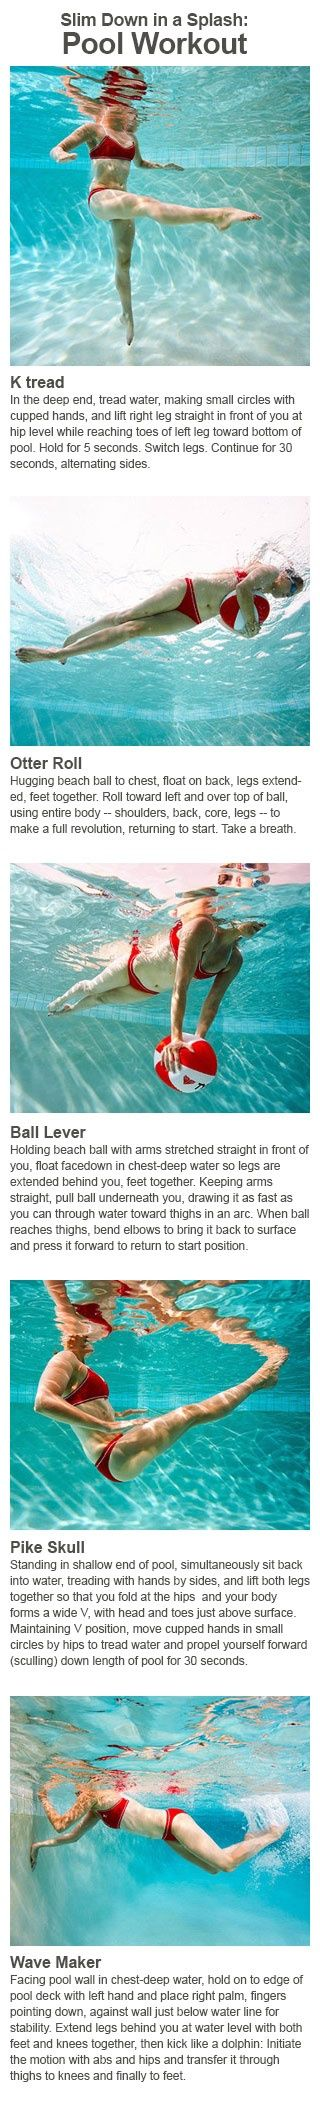 The 25 Best Swimming Pool Exercises Ideas On Pinterest Water Aerobics Workout Water Aerobic